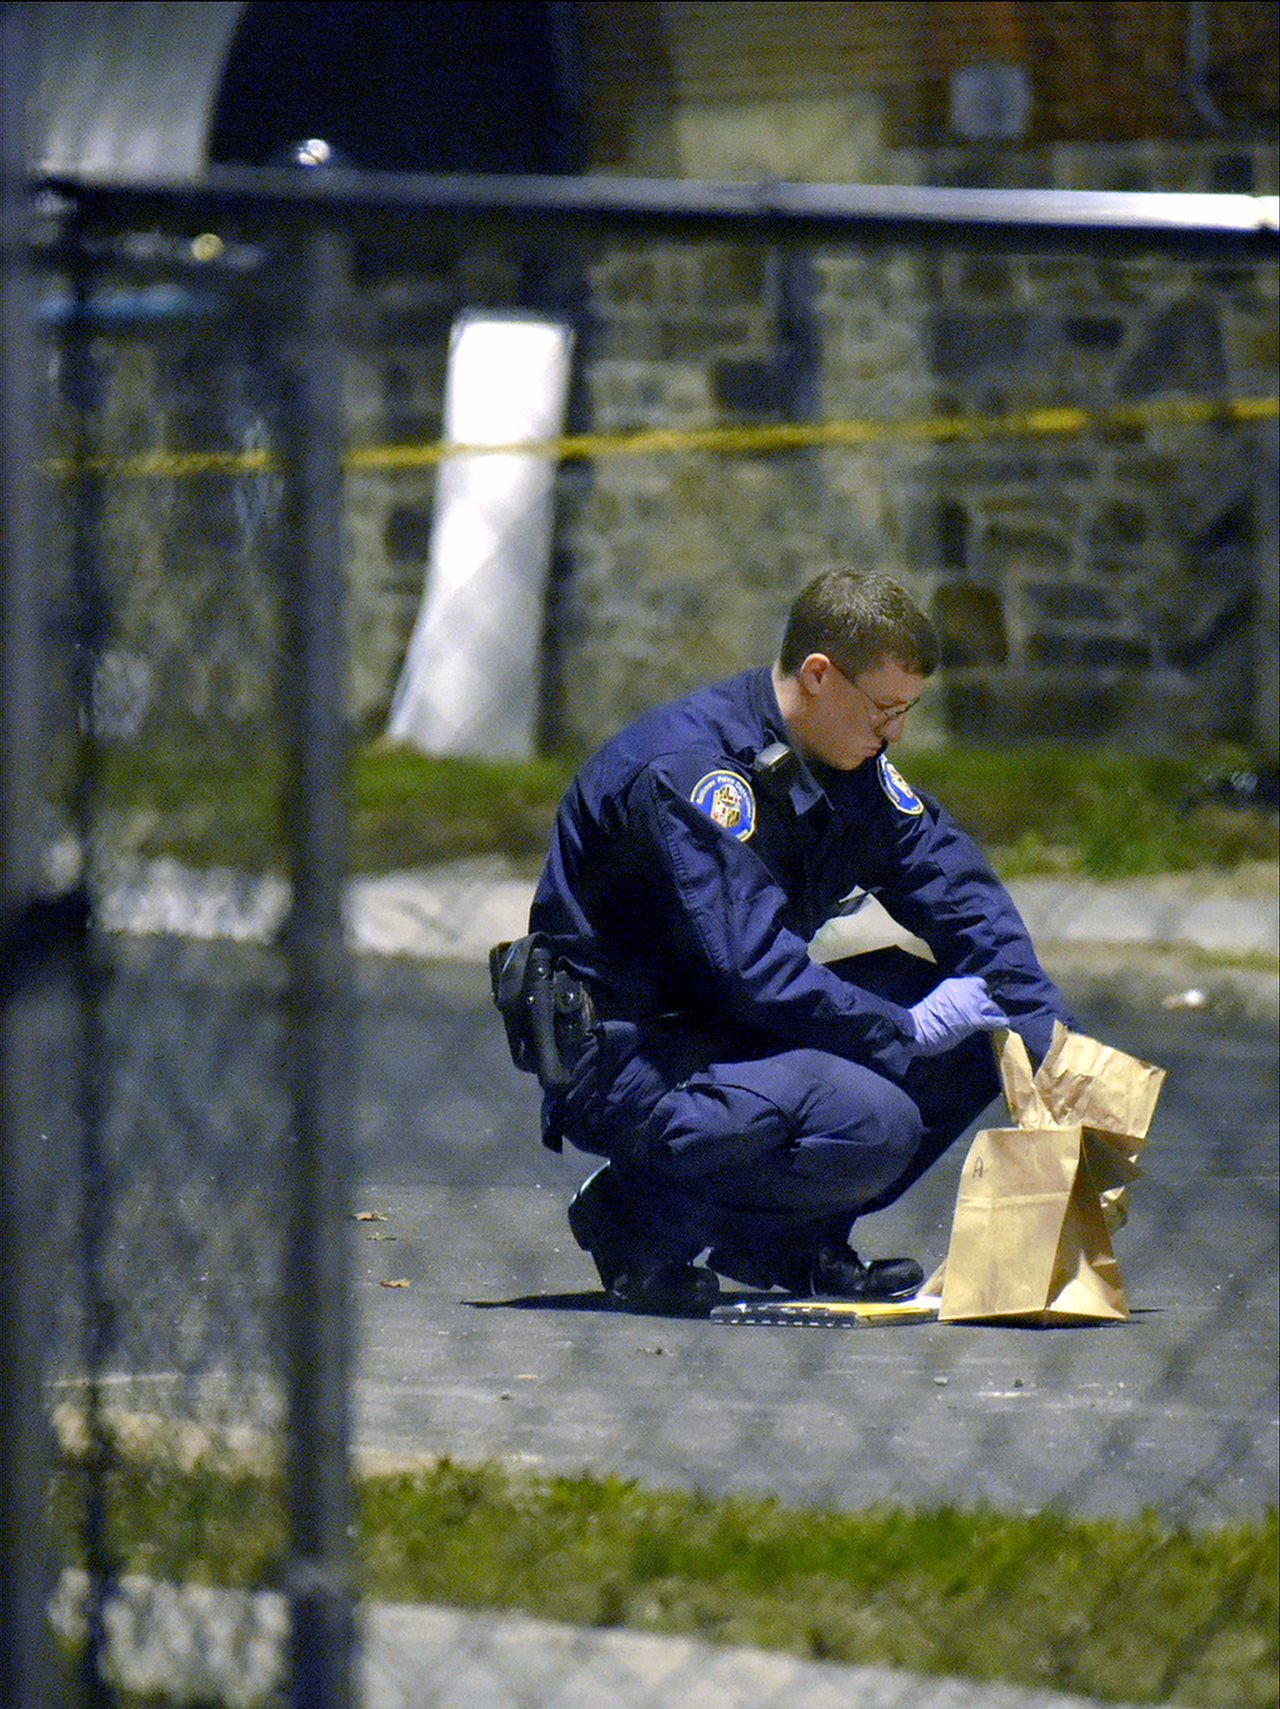 A crime lab technician investigating a fatal stabbing in Baltimore.